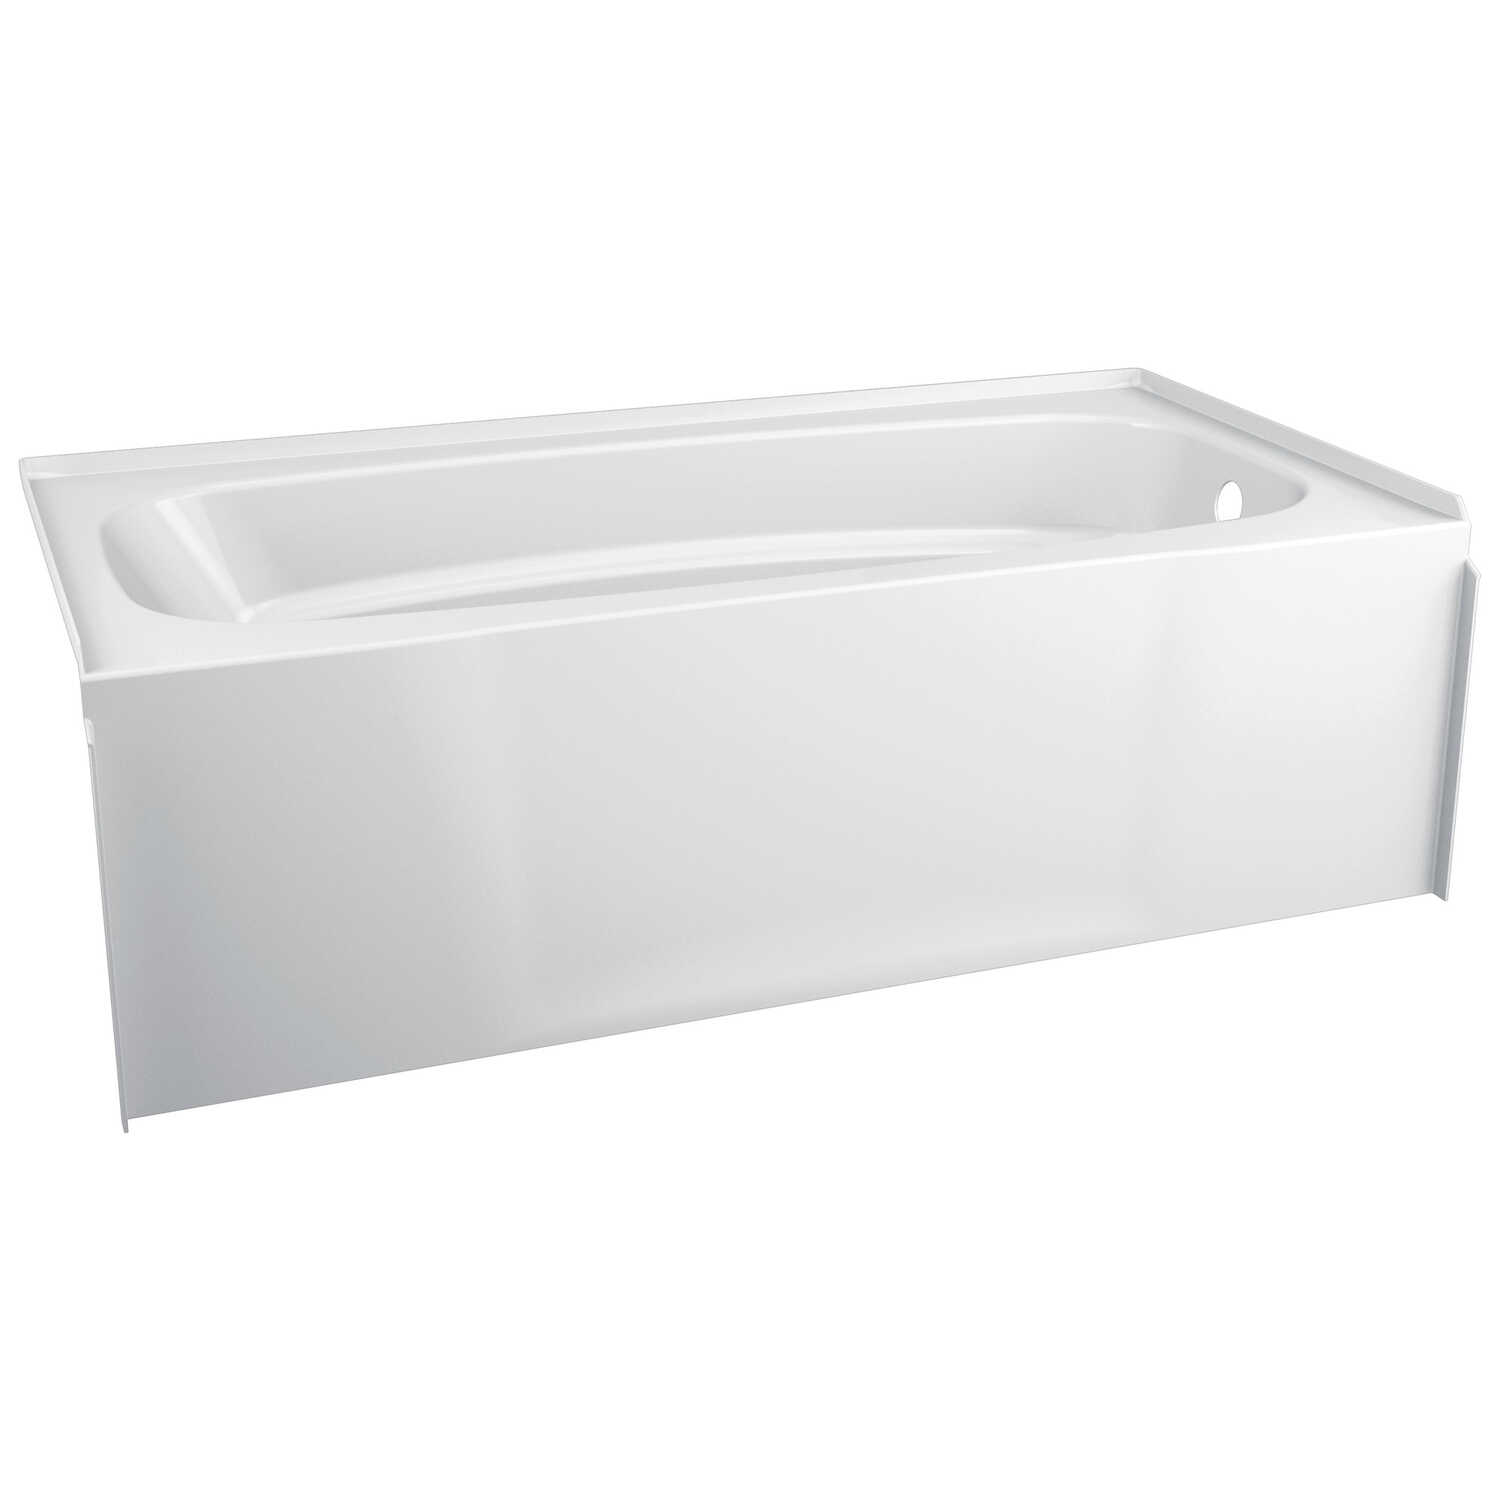 Delta  Hycroft  White  Bathtub  One Piece  Right  Rectangle